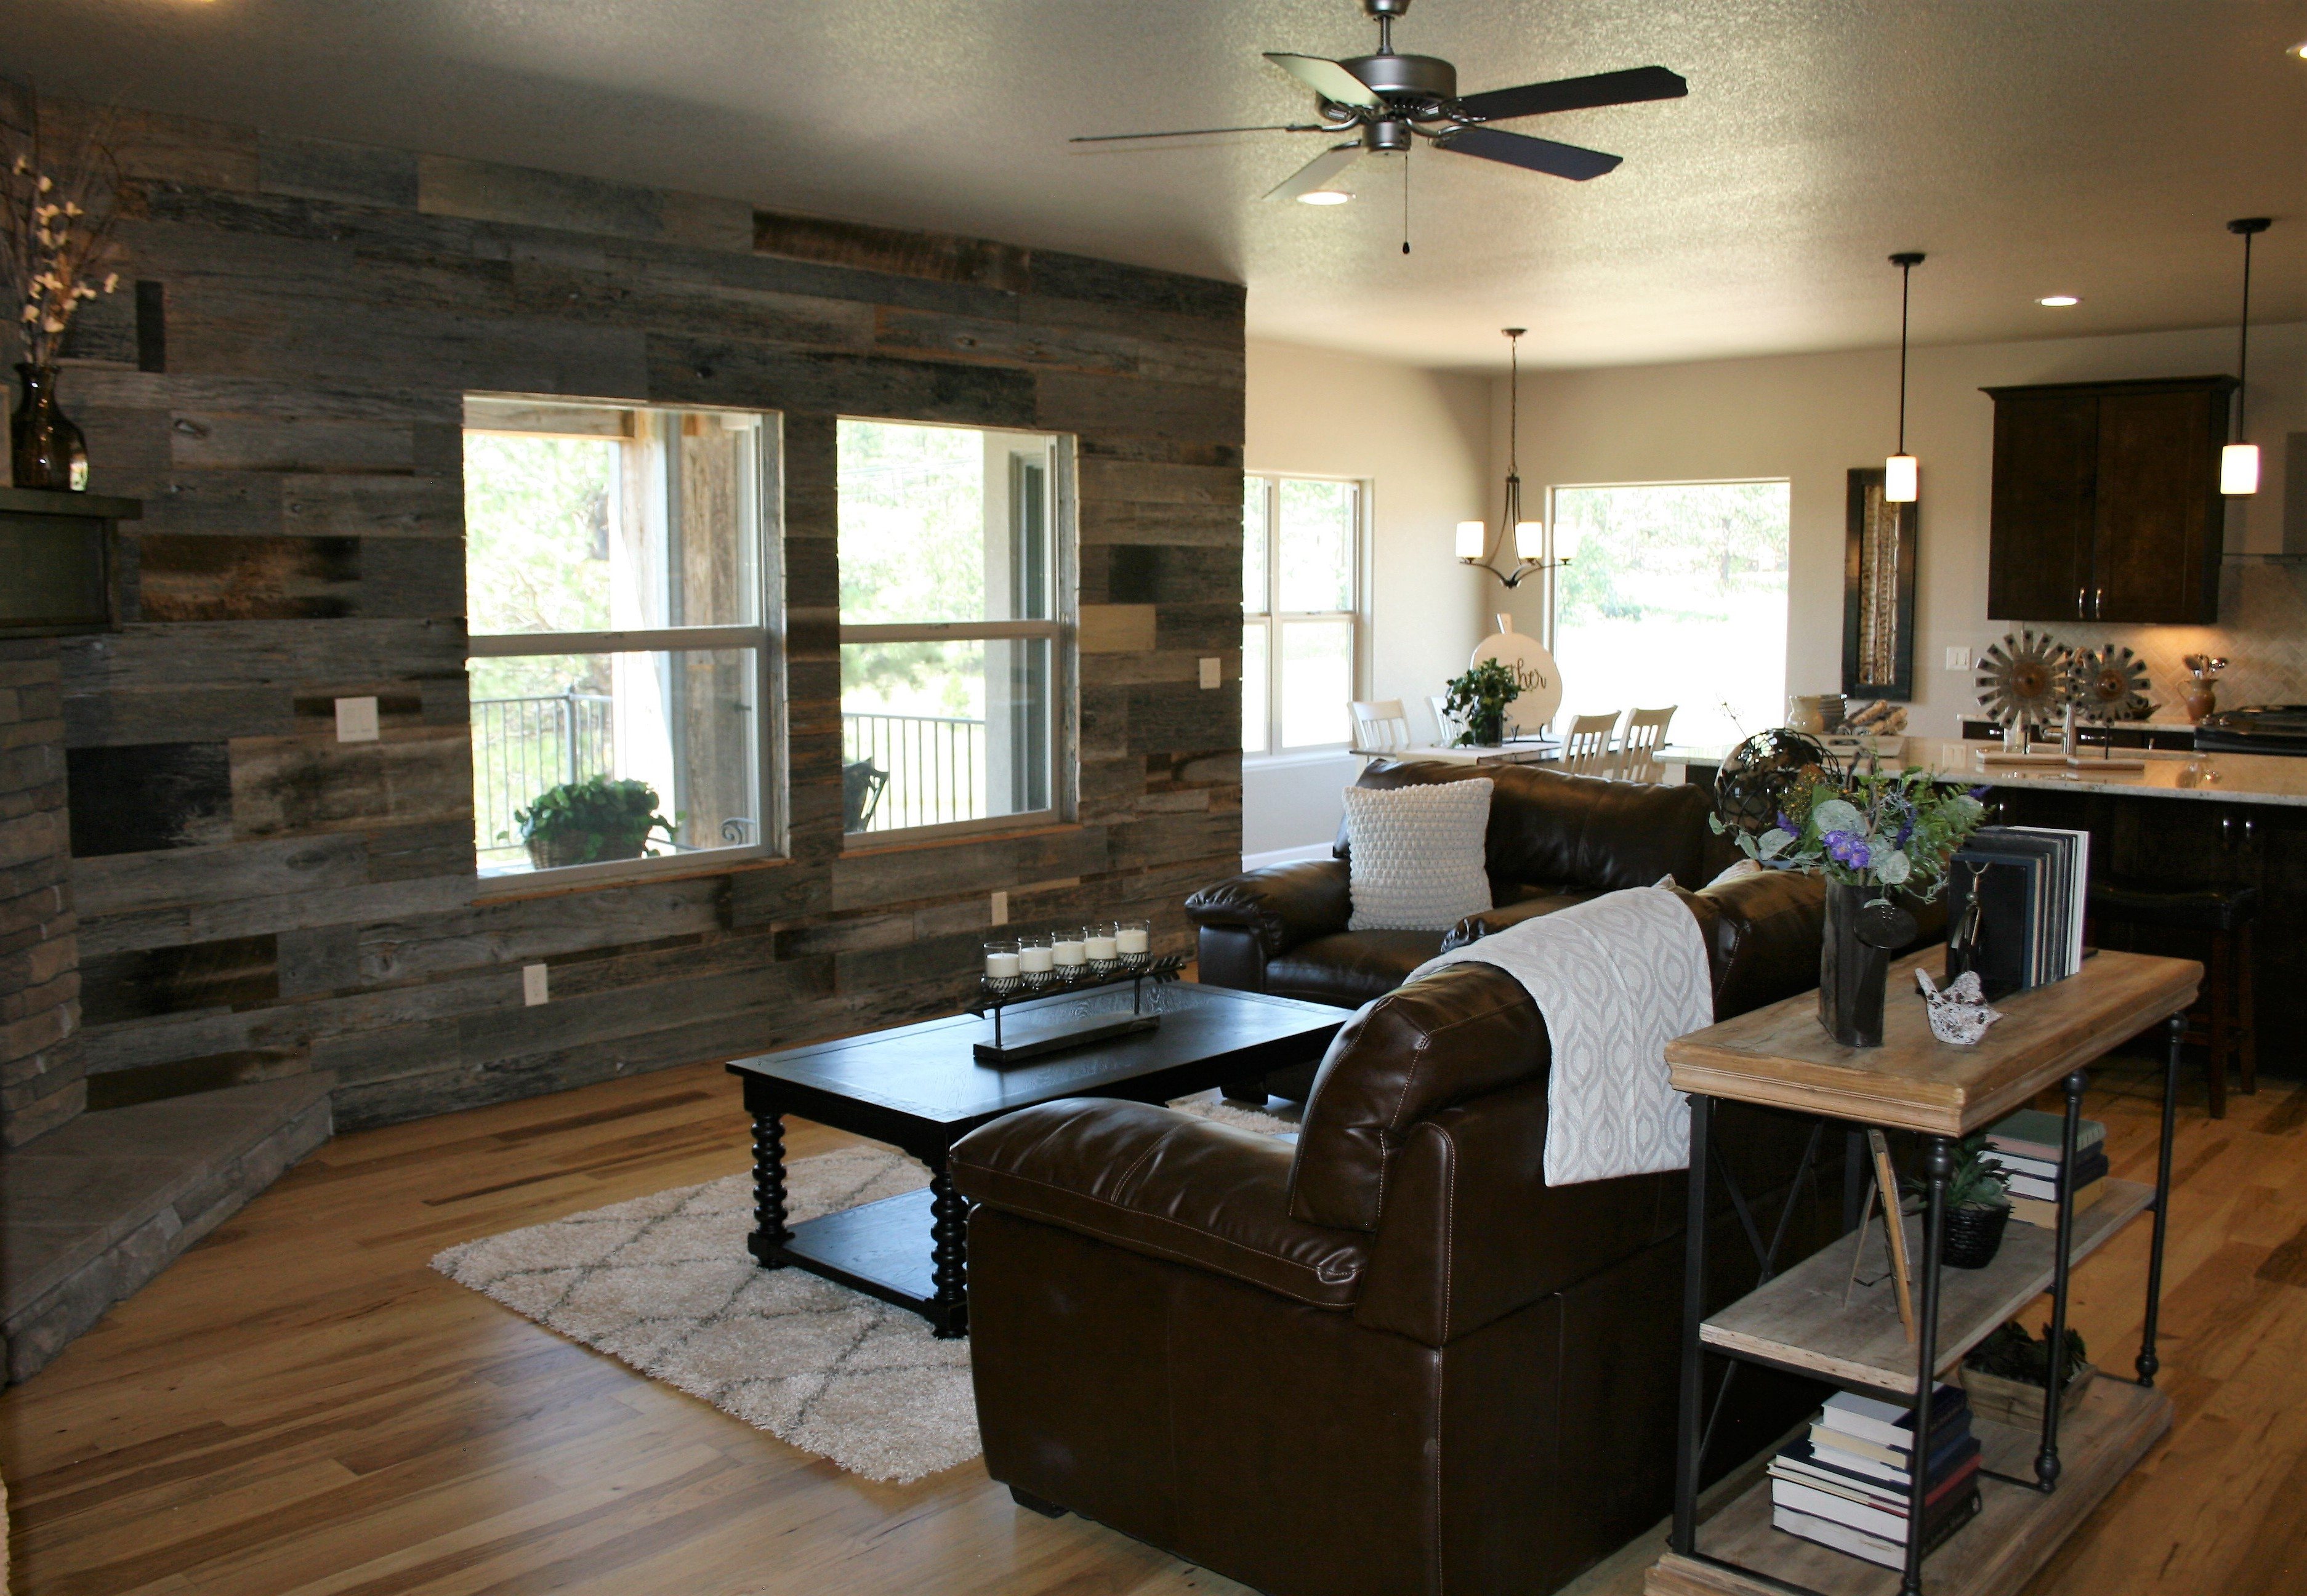 This Entry Was Tagged Colorado Springs Home Staging, Decorating In Colorado  Springs, Farmhouse Design, Home Design, Home Staging, Interior Design,  Rustic ...